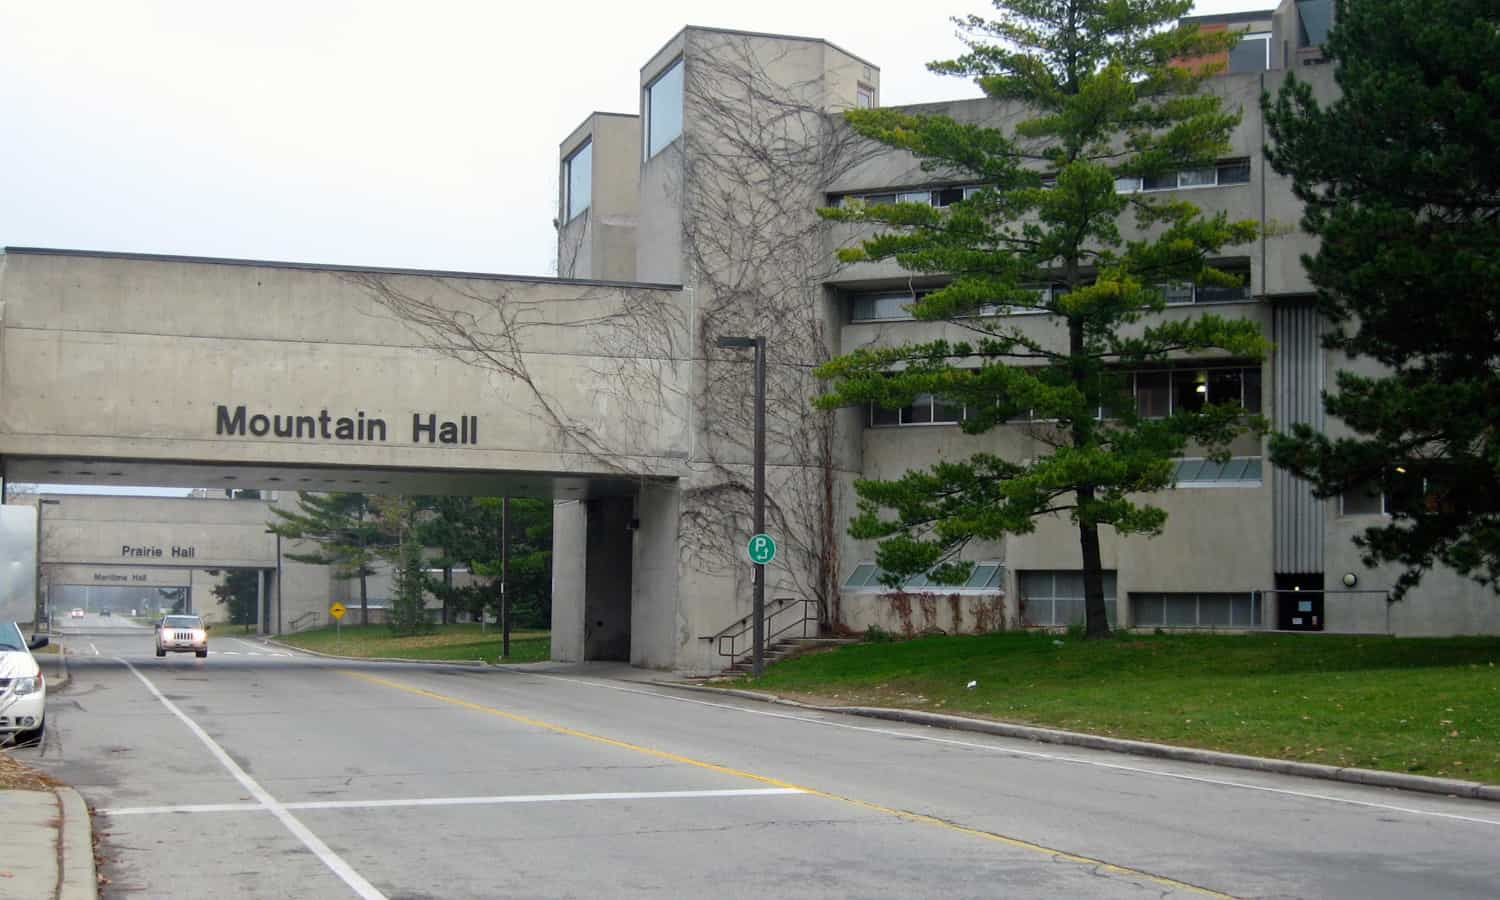 Mountain Hall with its raised walkway linking to the dining area